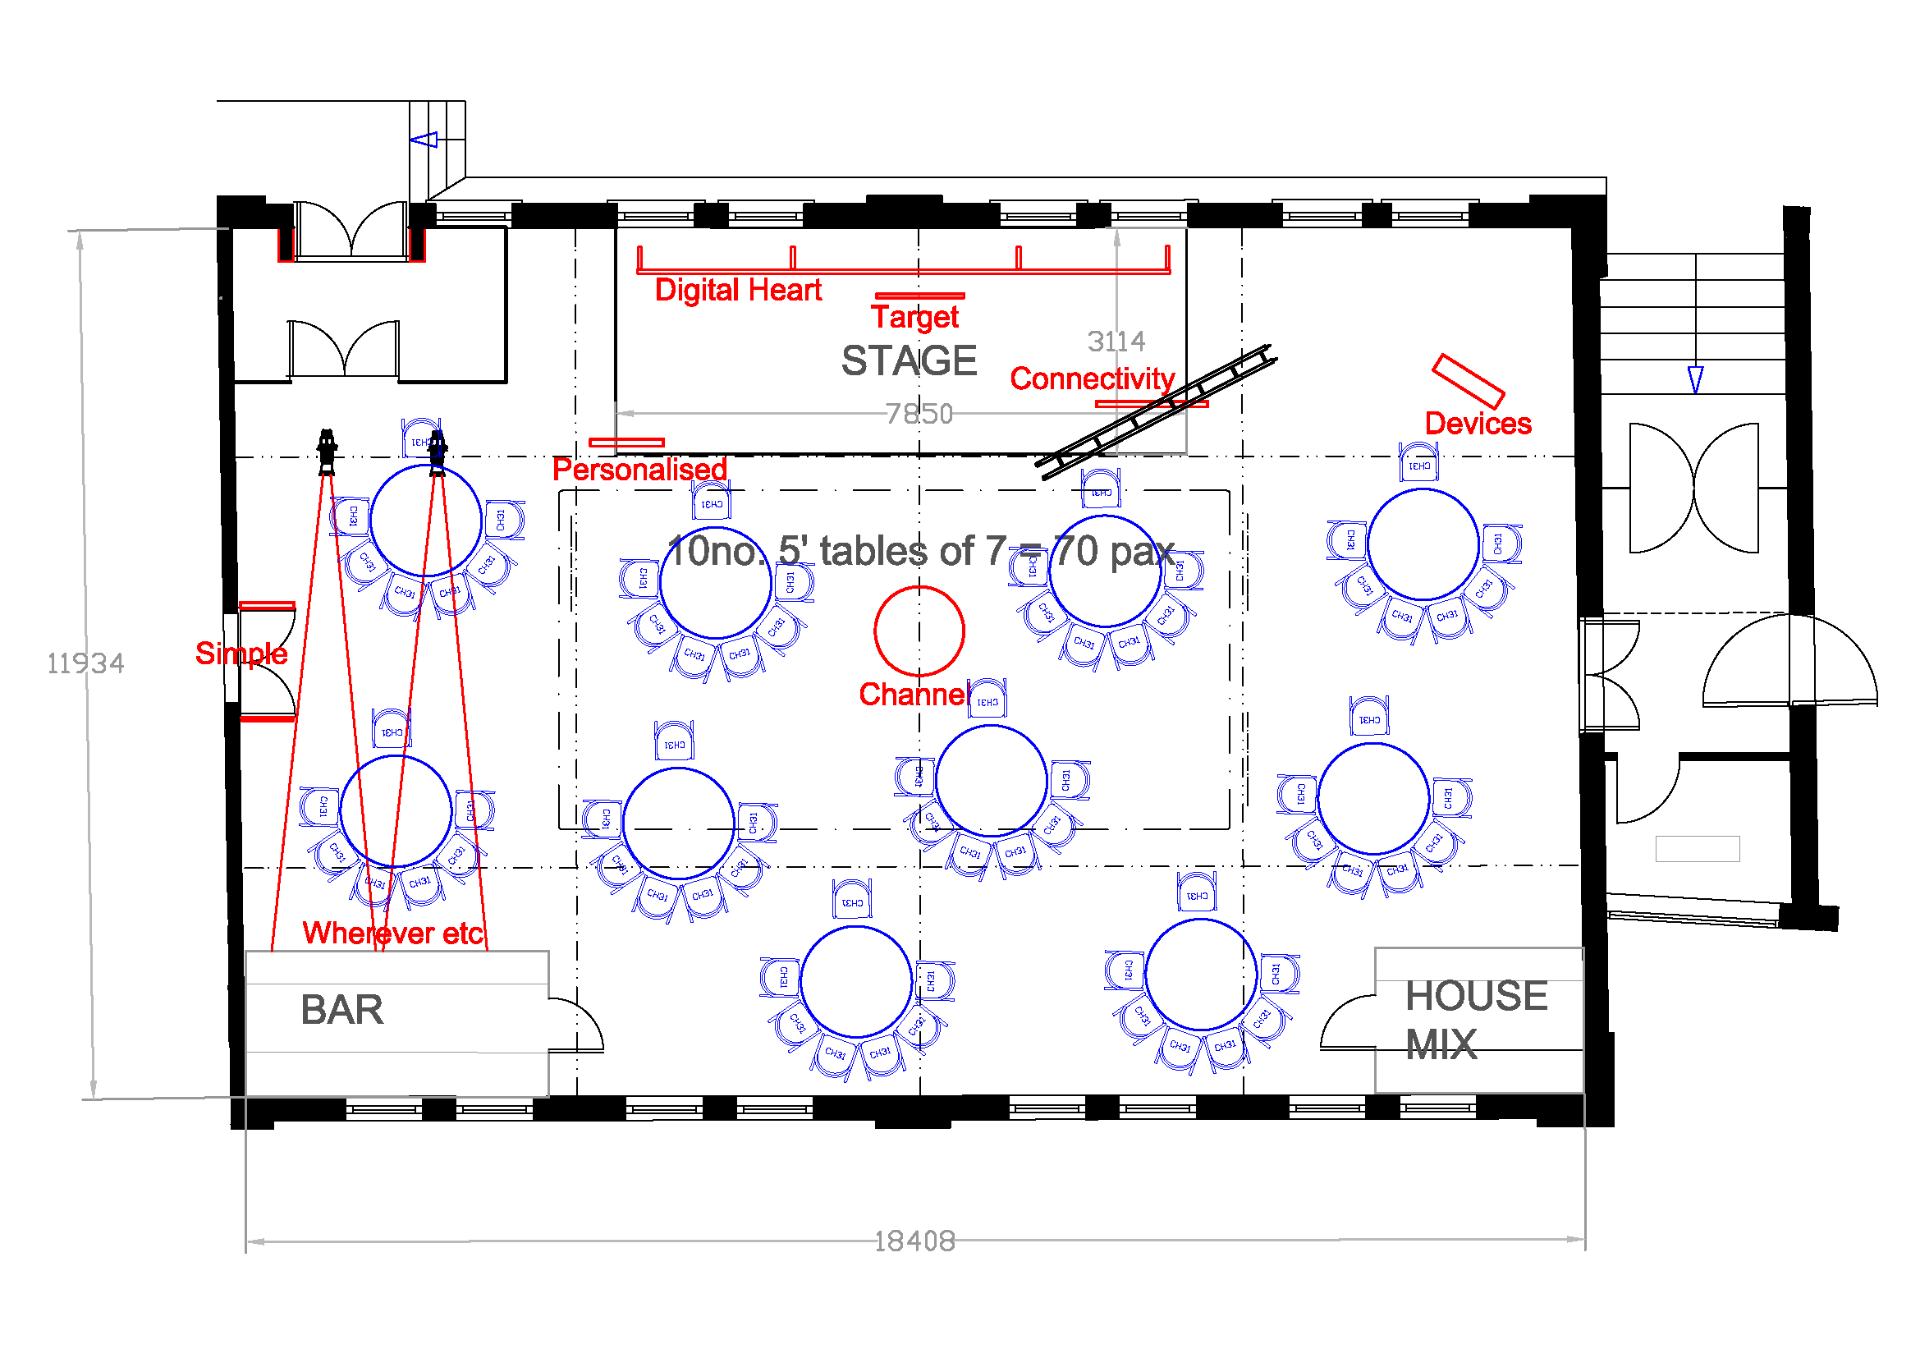 EE Online Main room v02 Plan combined_edited.png